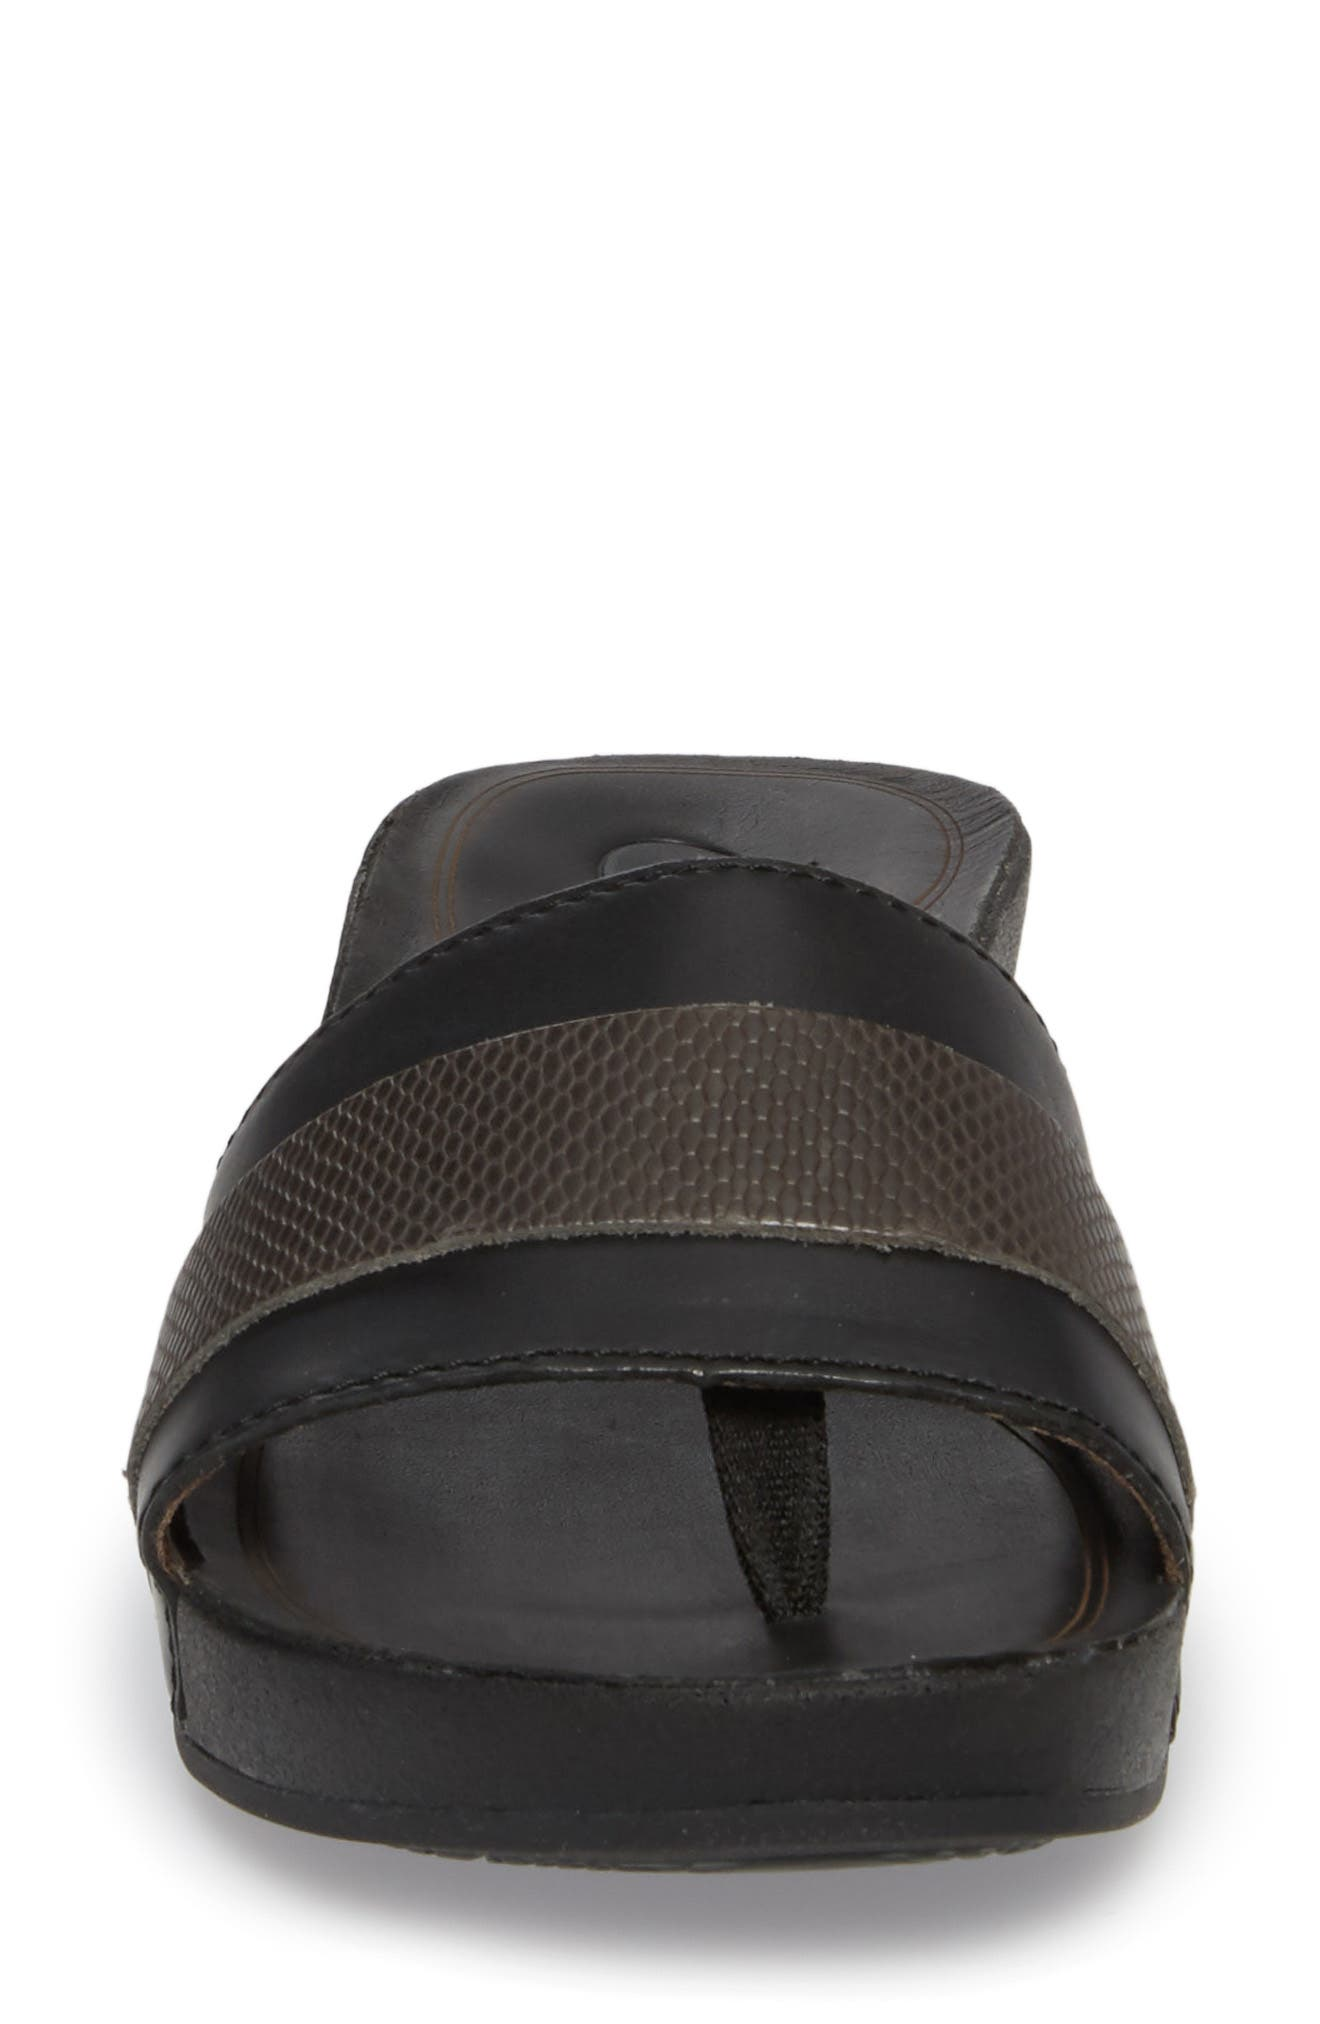 Ola Huna Wedge Sandal,                             Alternate thumbnail 4, color,                             020